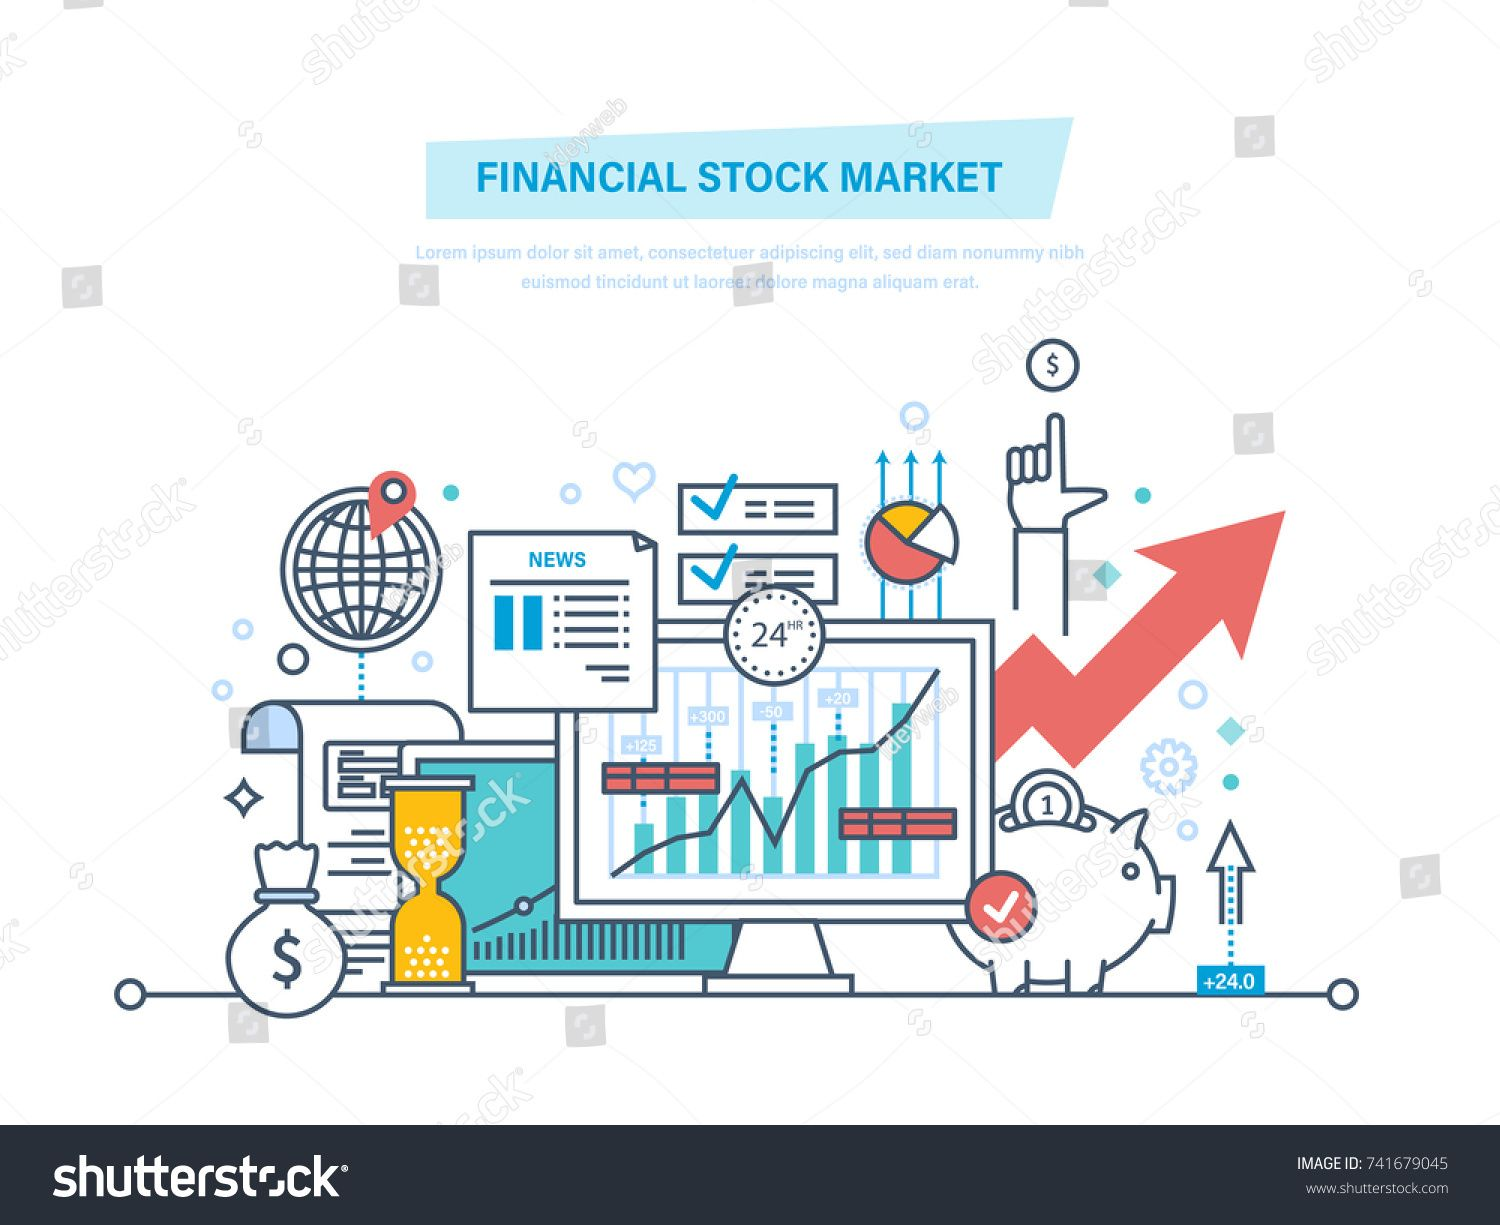 Financial Stock Market Capital Markets Trading E Commerce Investments Finance Growth Of Economic Indicators S Stock Market Capital Market Budget Planner